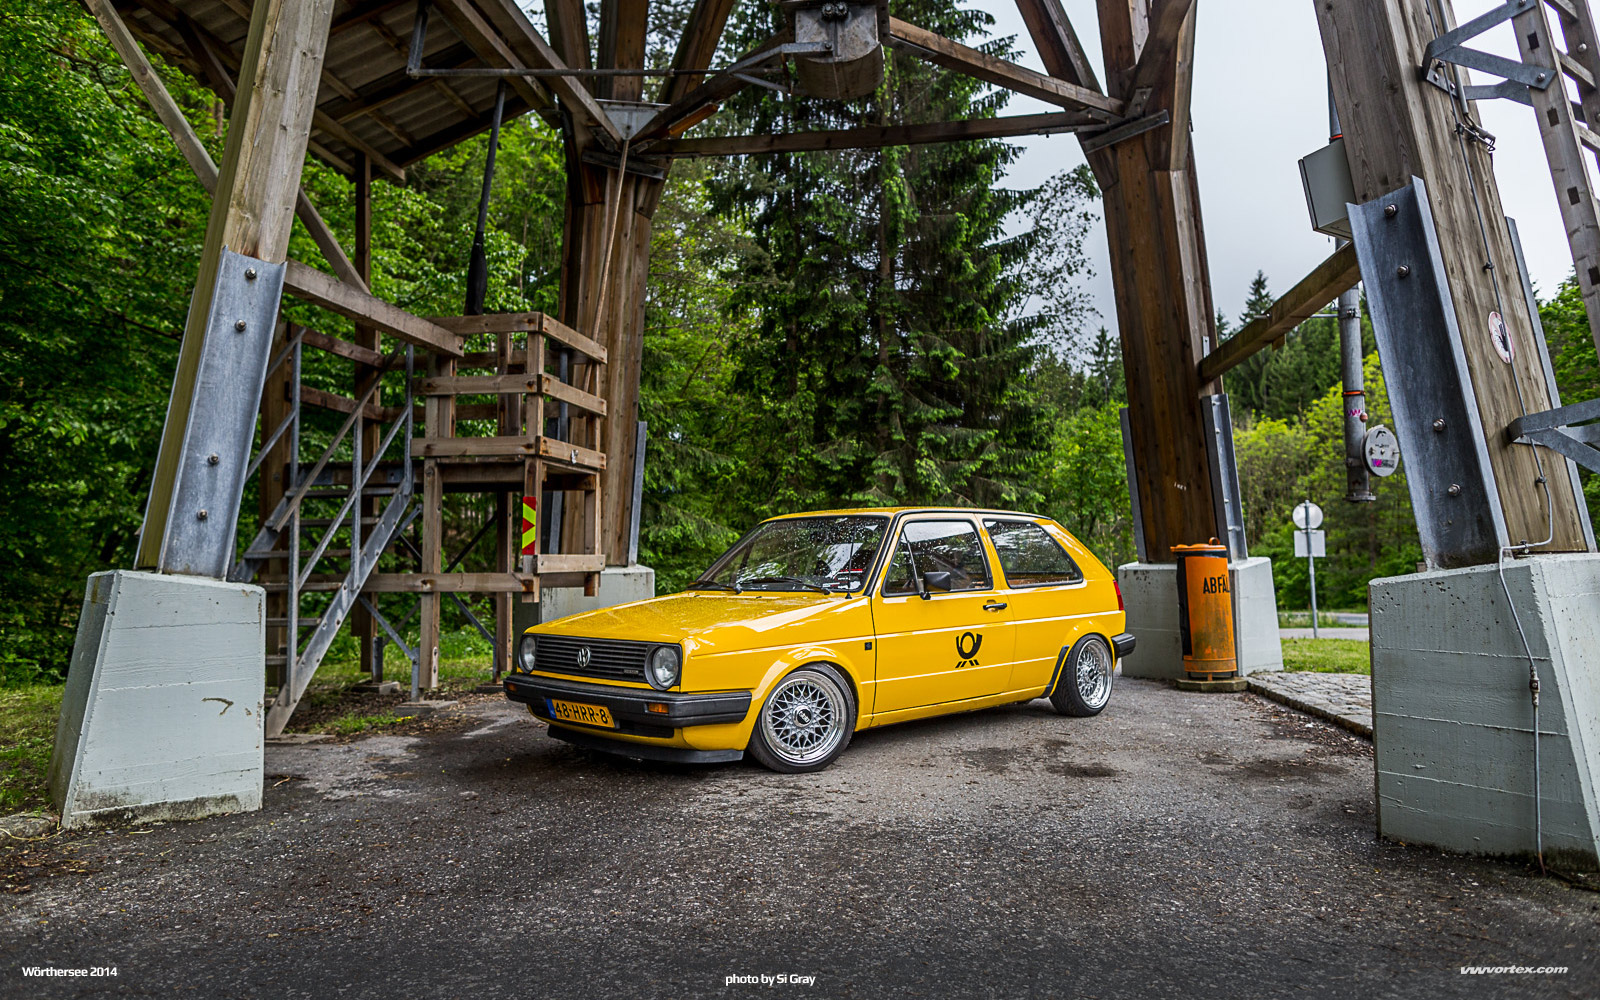 worthersee-2014-daytwo-si-gray-400